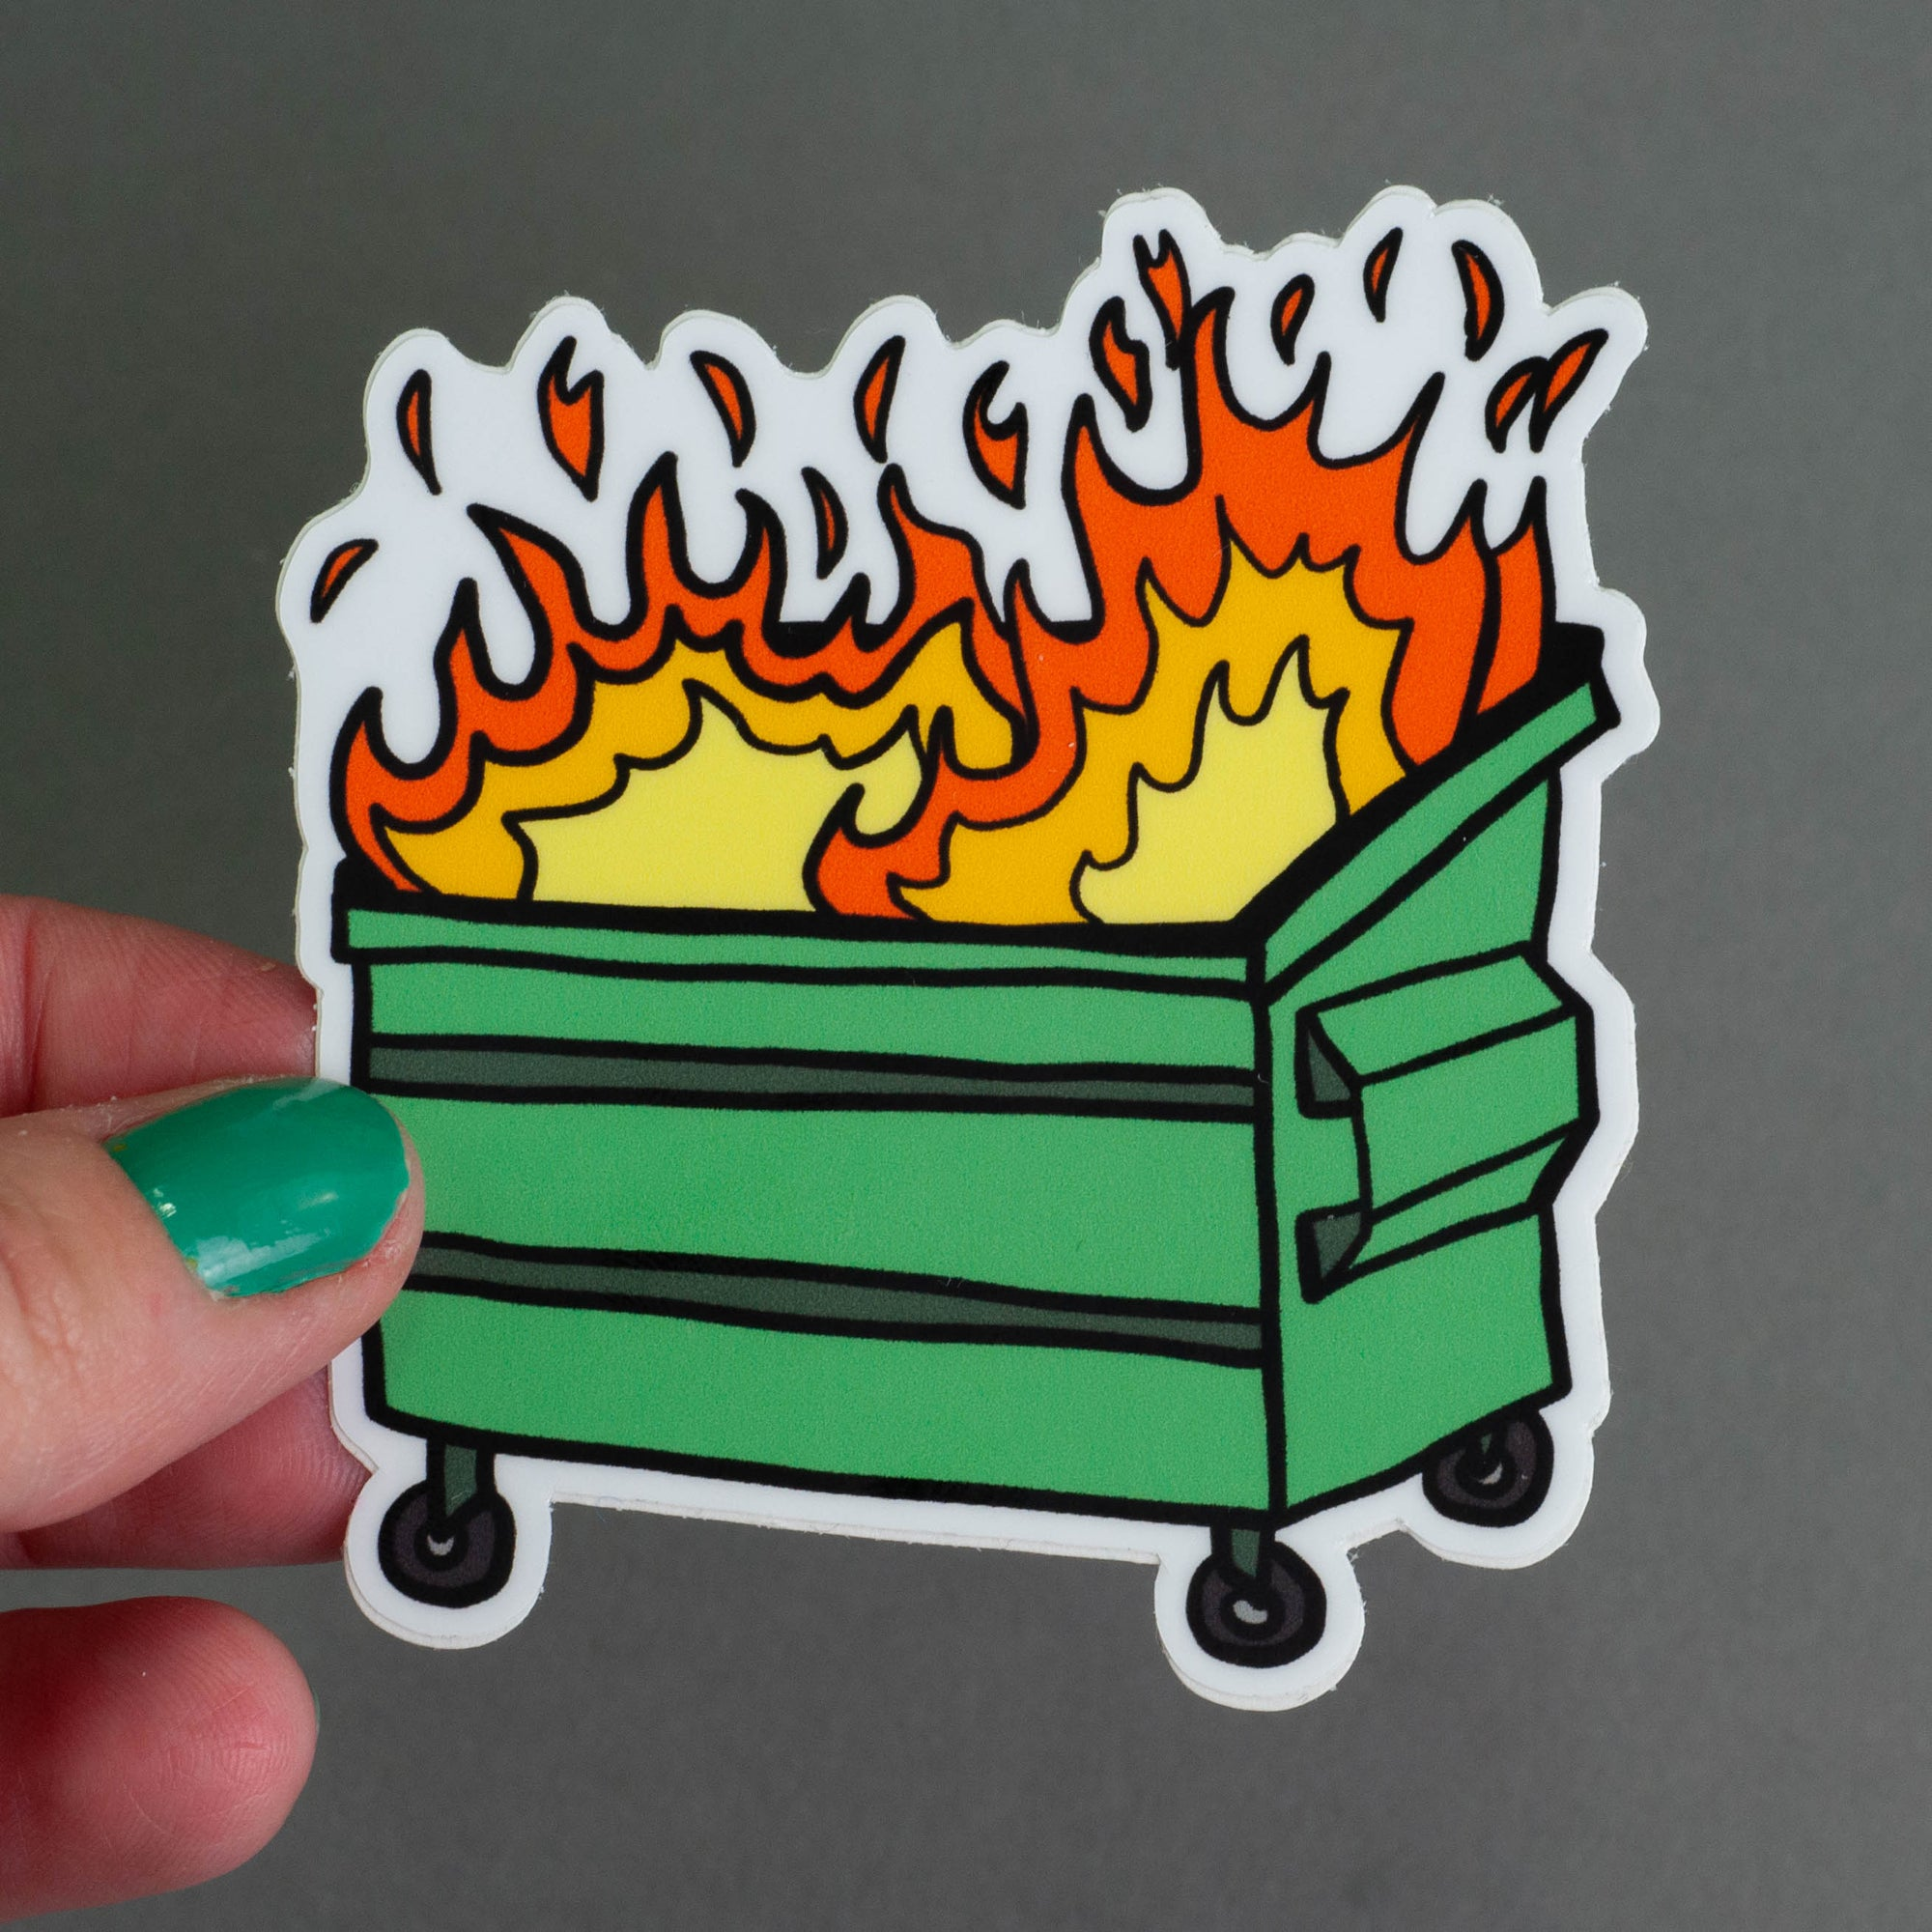 Image of hand holding a die cut sticker of a dumpster fire on a grey background